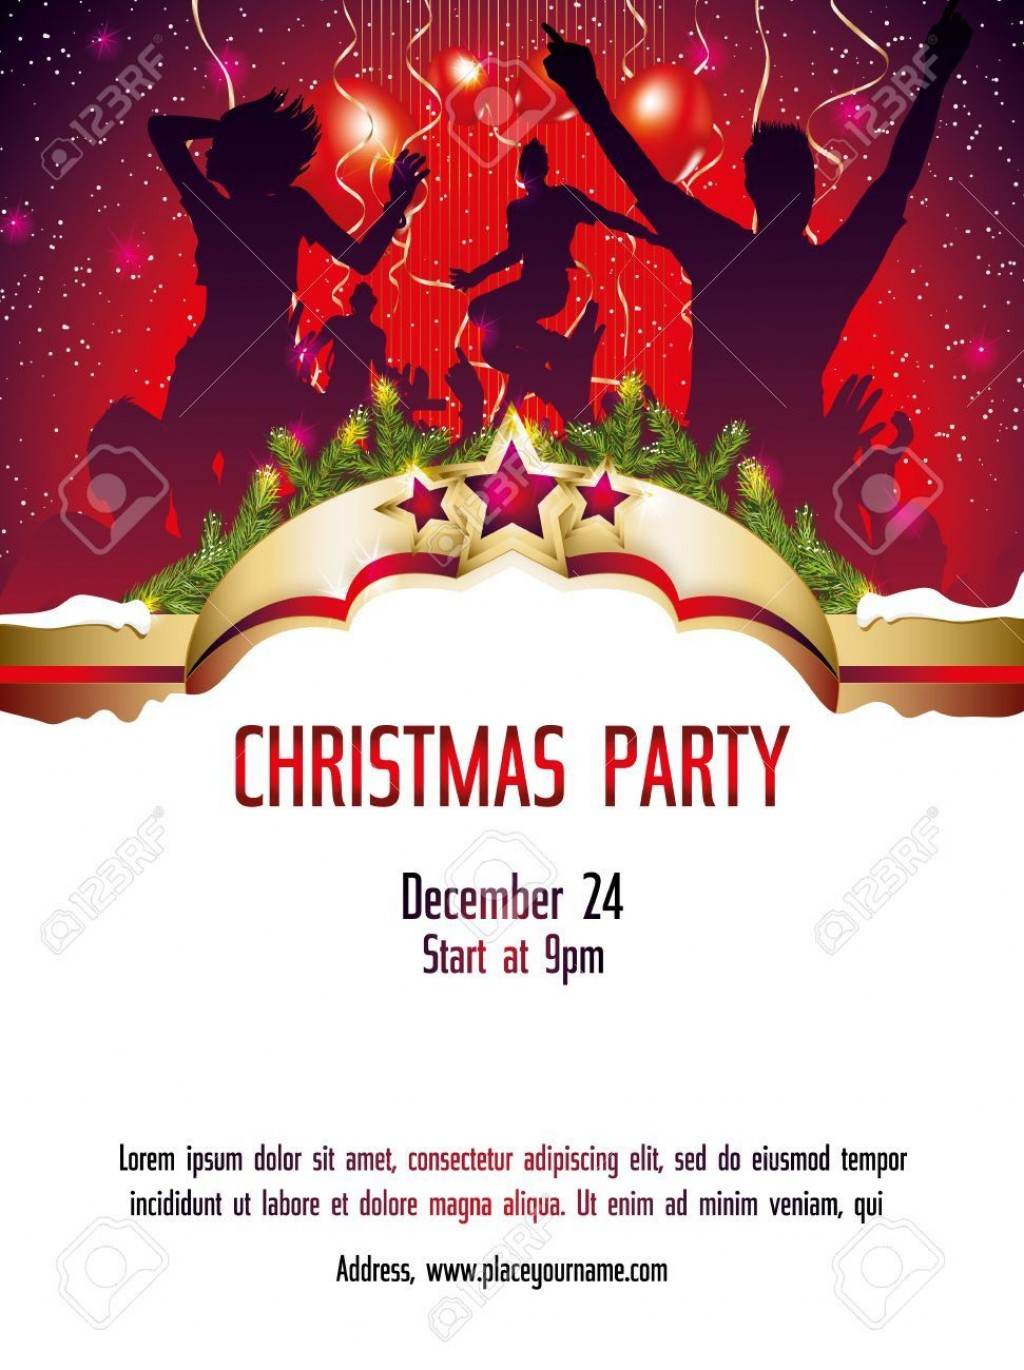 002 Shocking Christma Party Invitation Template High Definition  Funny Free Download Word CardLarge